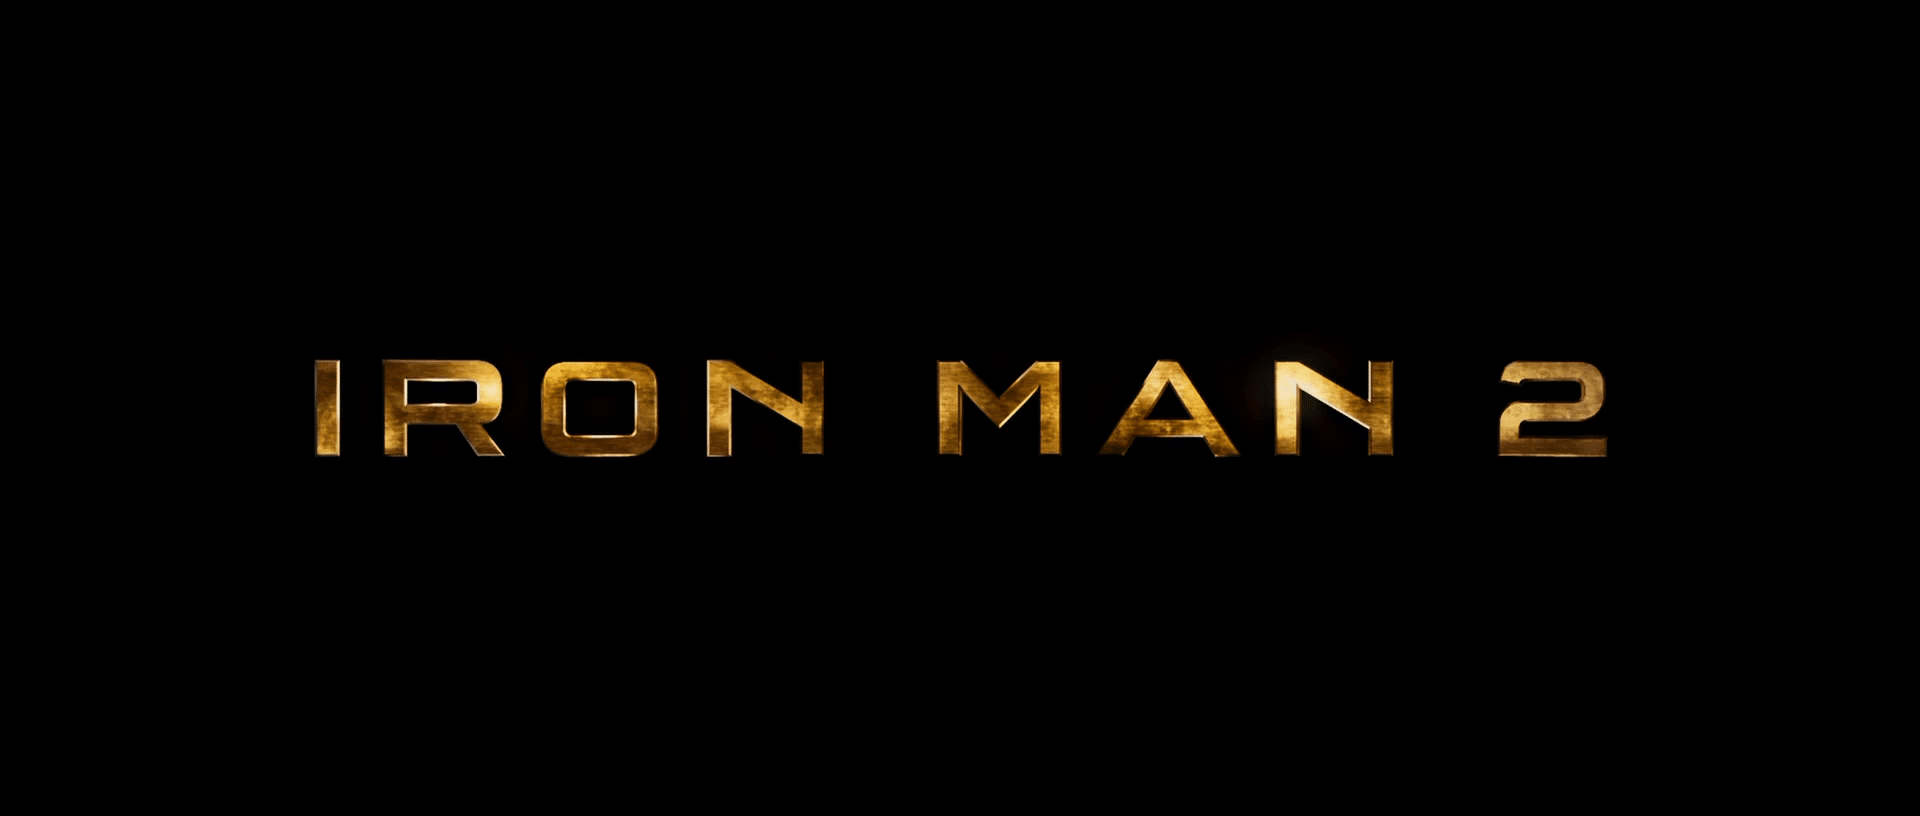 Iron Man 2 (2010): el MCU crece en un film irregular pero divertido